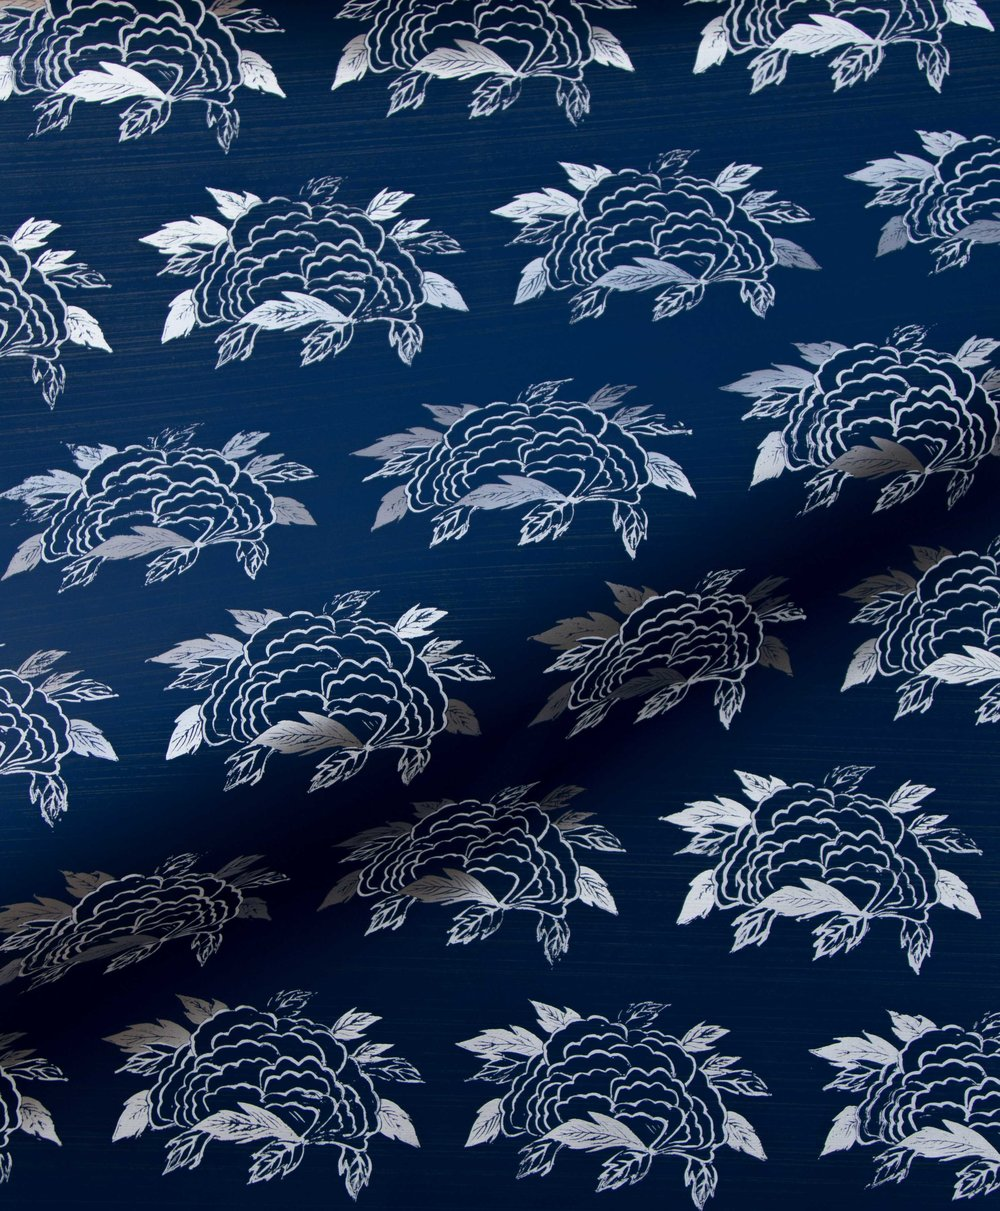 Krane Home_SL130-02 Chrysanthemum Navy Wallpaper-3.jpeg